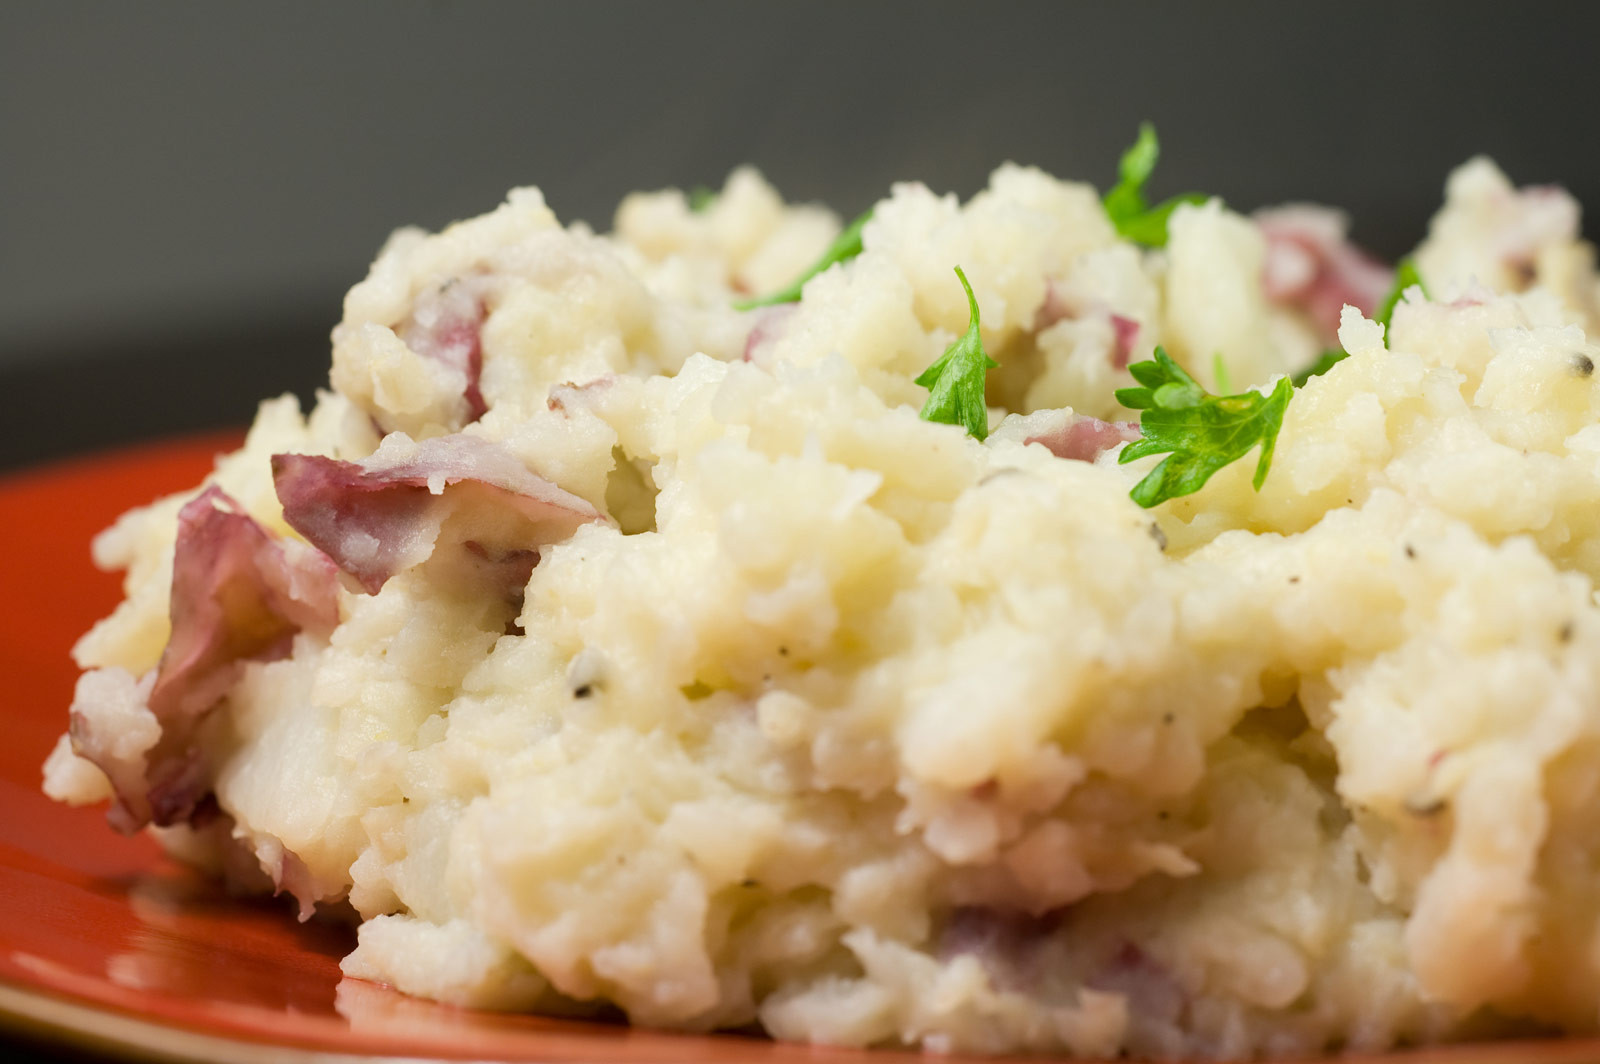 Skins On Mashed Potatoes  Sports 4 All Foundation Last Recipe for the Month of